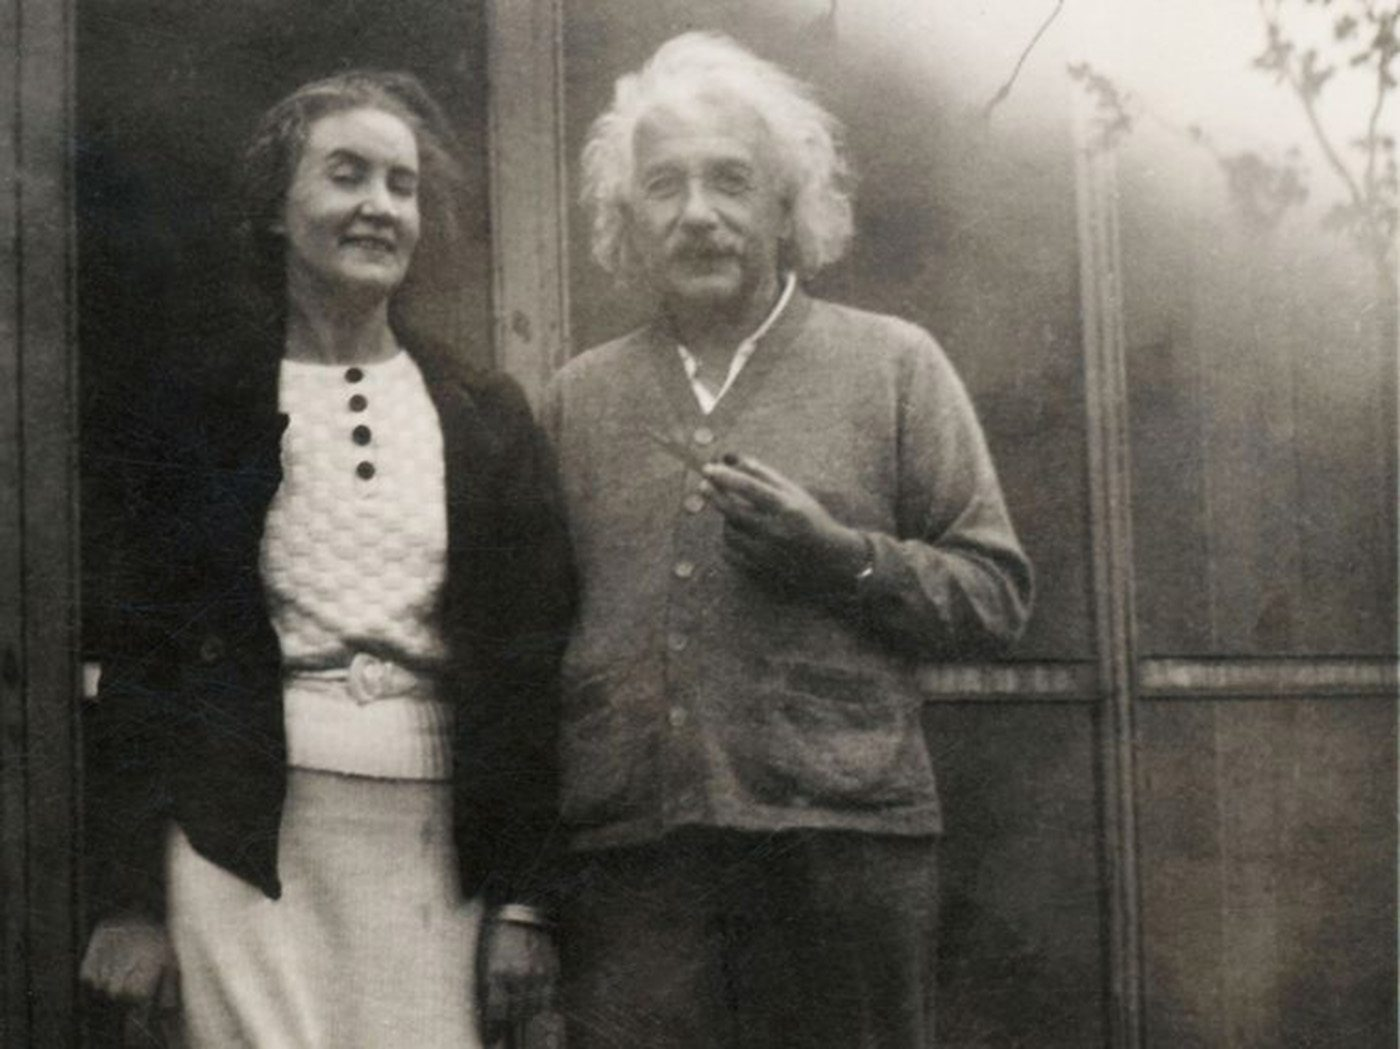 history of albert einstein Albert einstein was one of the most famous scientists of the 20th century here, are a few things about his life you might like to know he was born on 14th march, 1879 in germany to a businessman father.